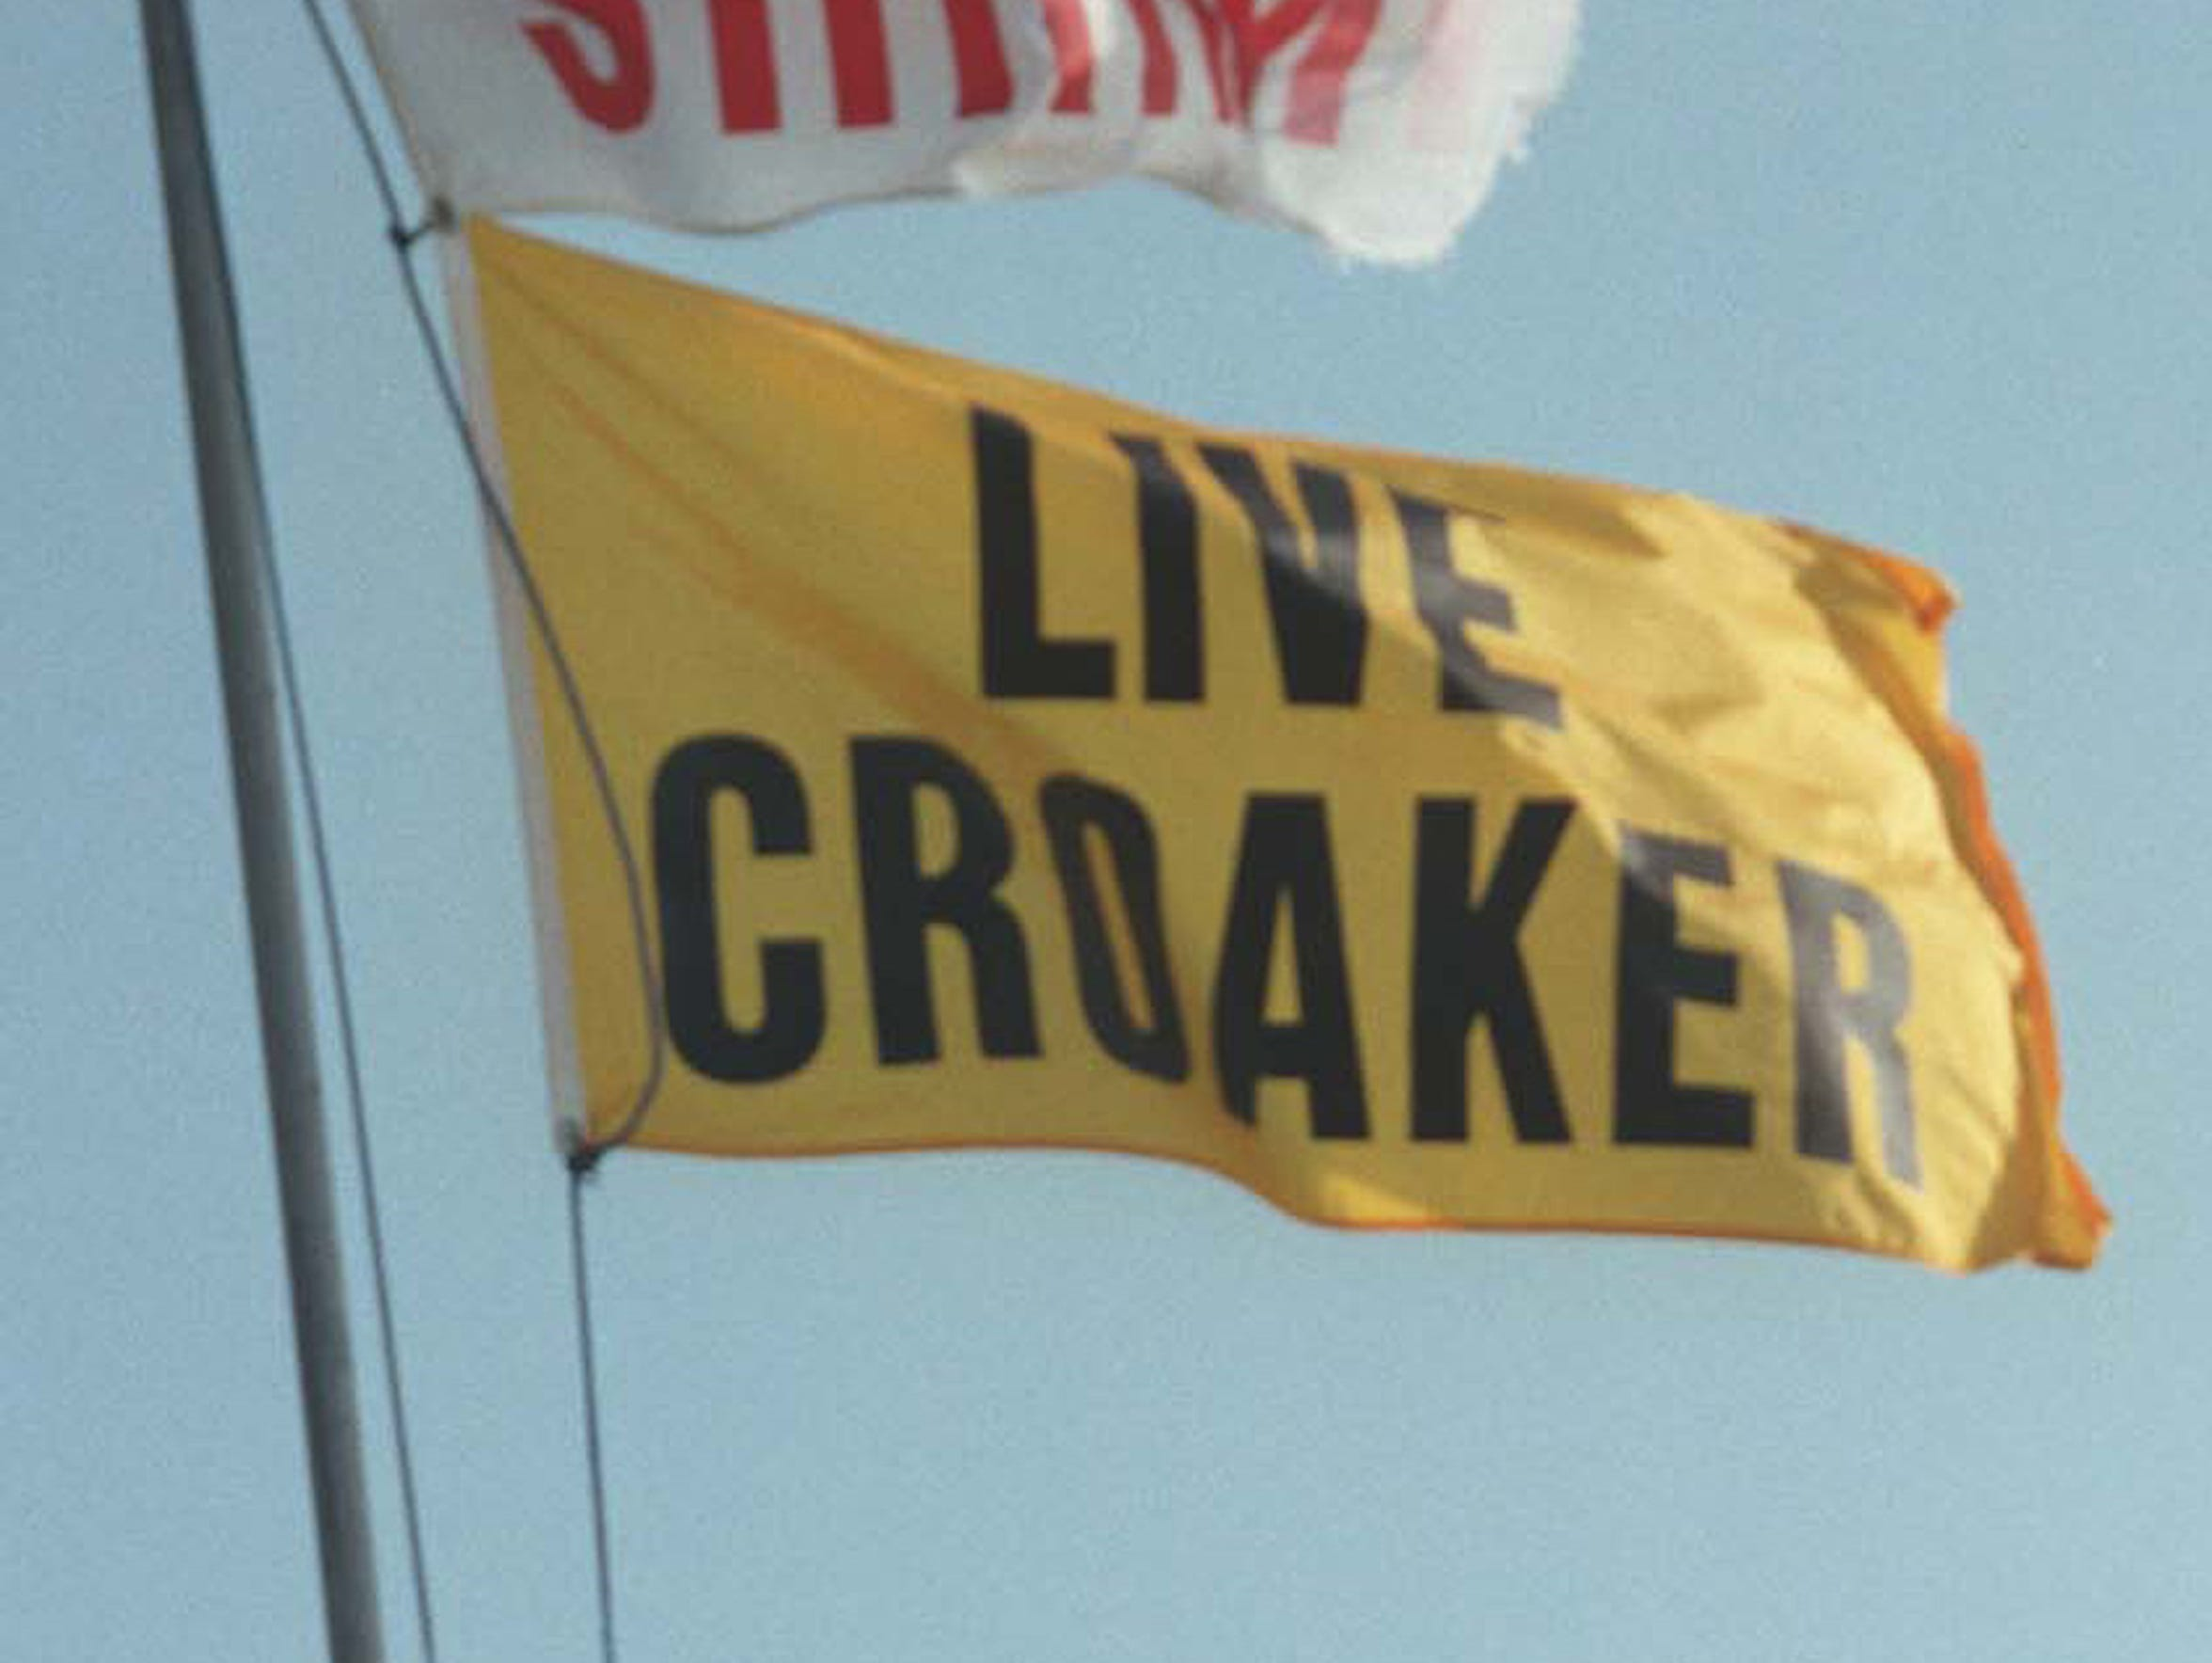 Most bait shops show the availability of live croaker